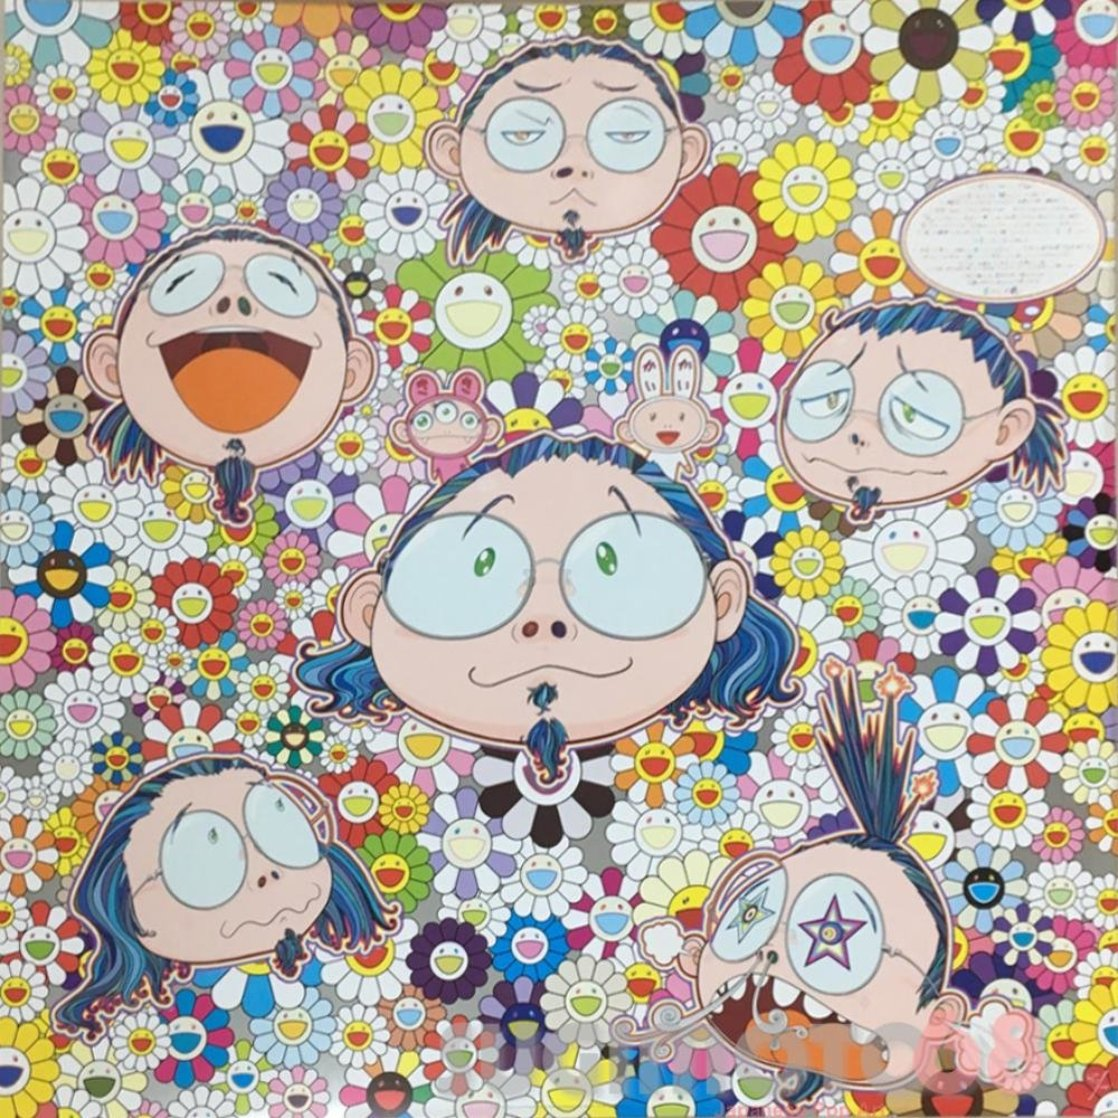 Artist's Agony And Ecstasy 2017 Limited Edition Print by Takashi Murakami